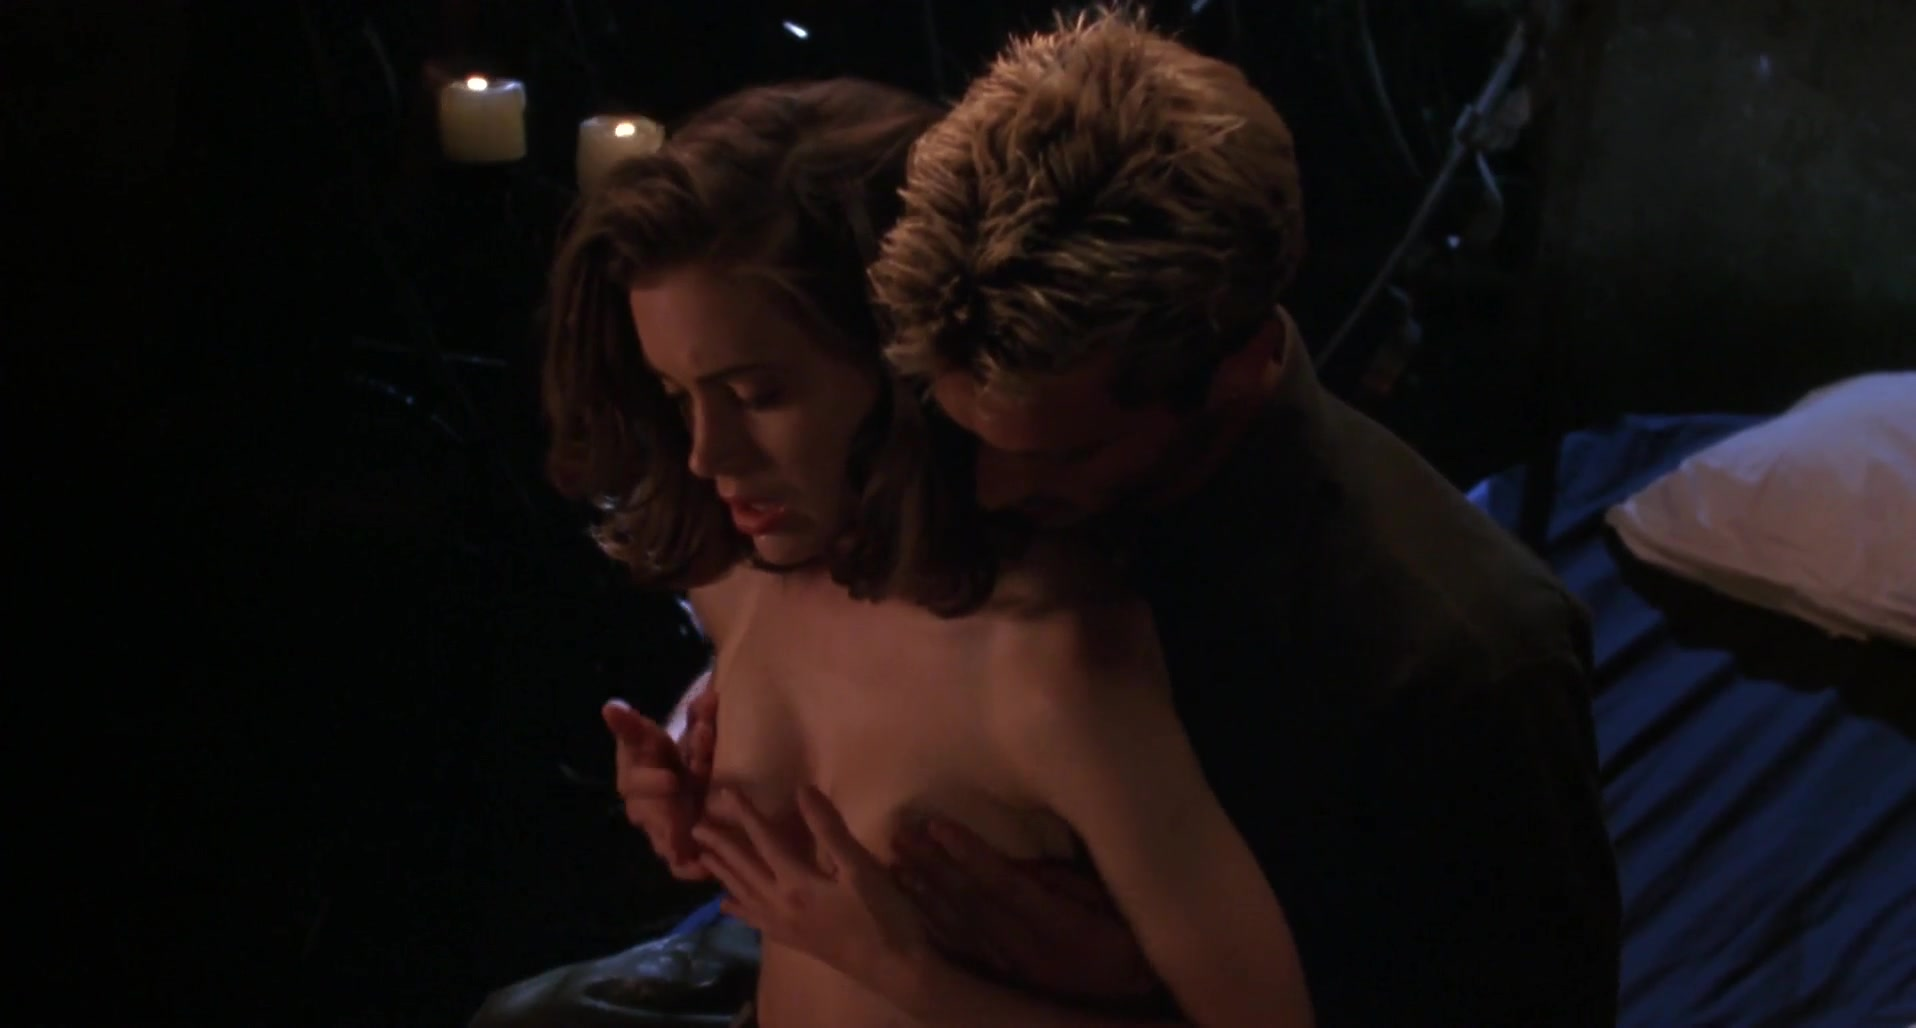 100 Images of Alyssa Milano Poison Ivy Sex Scene